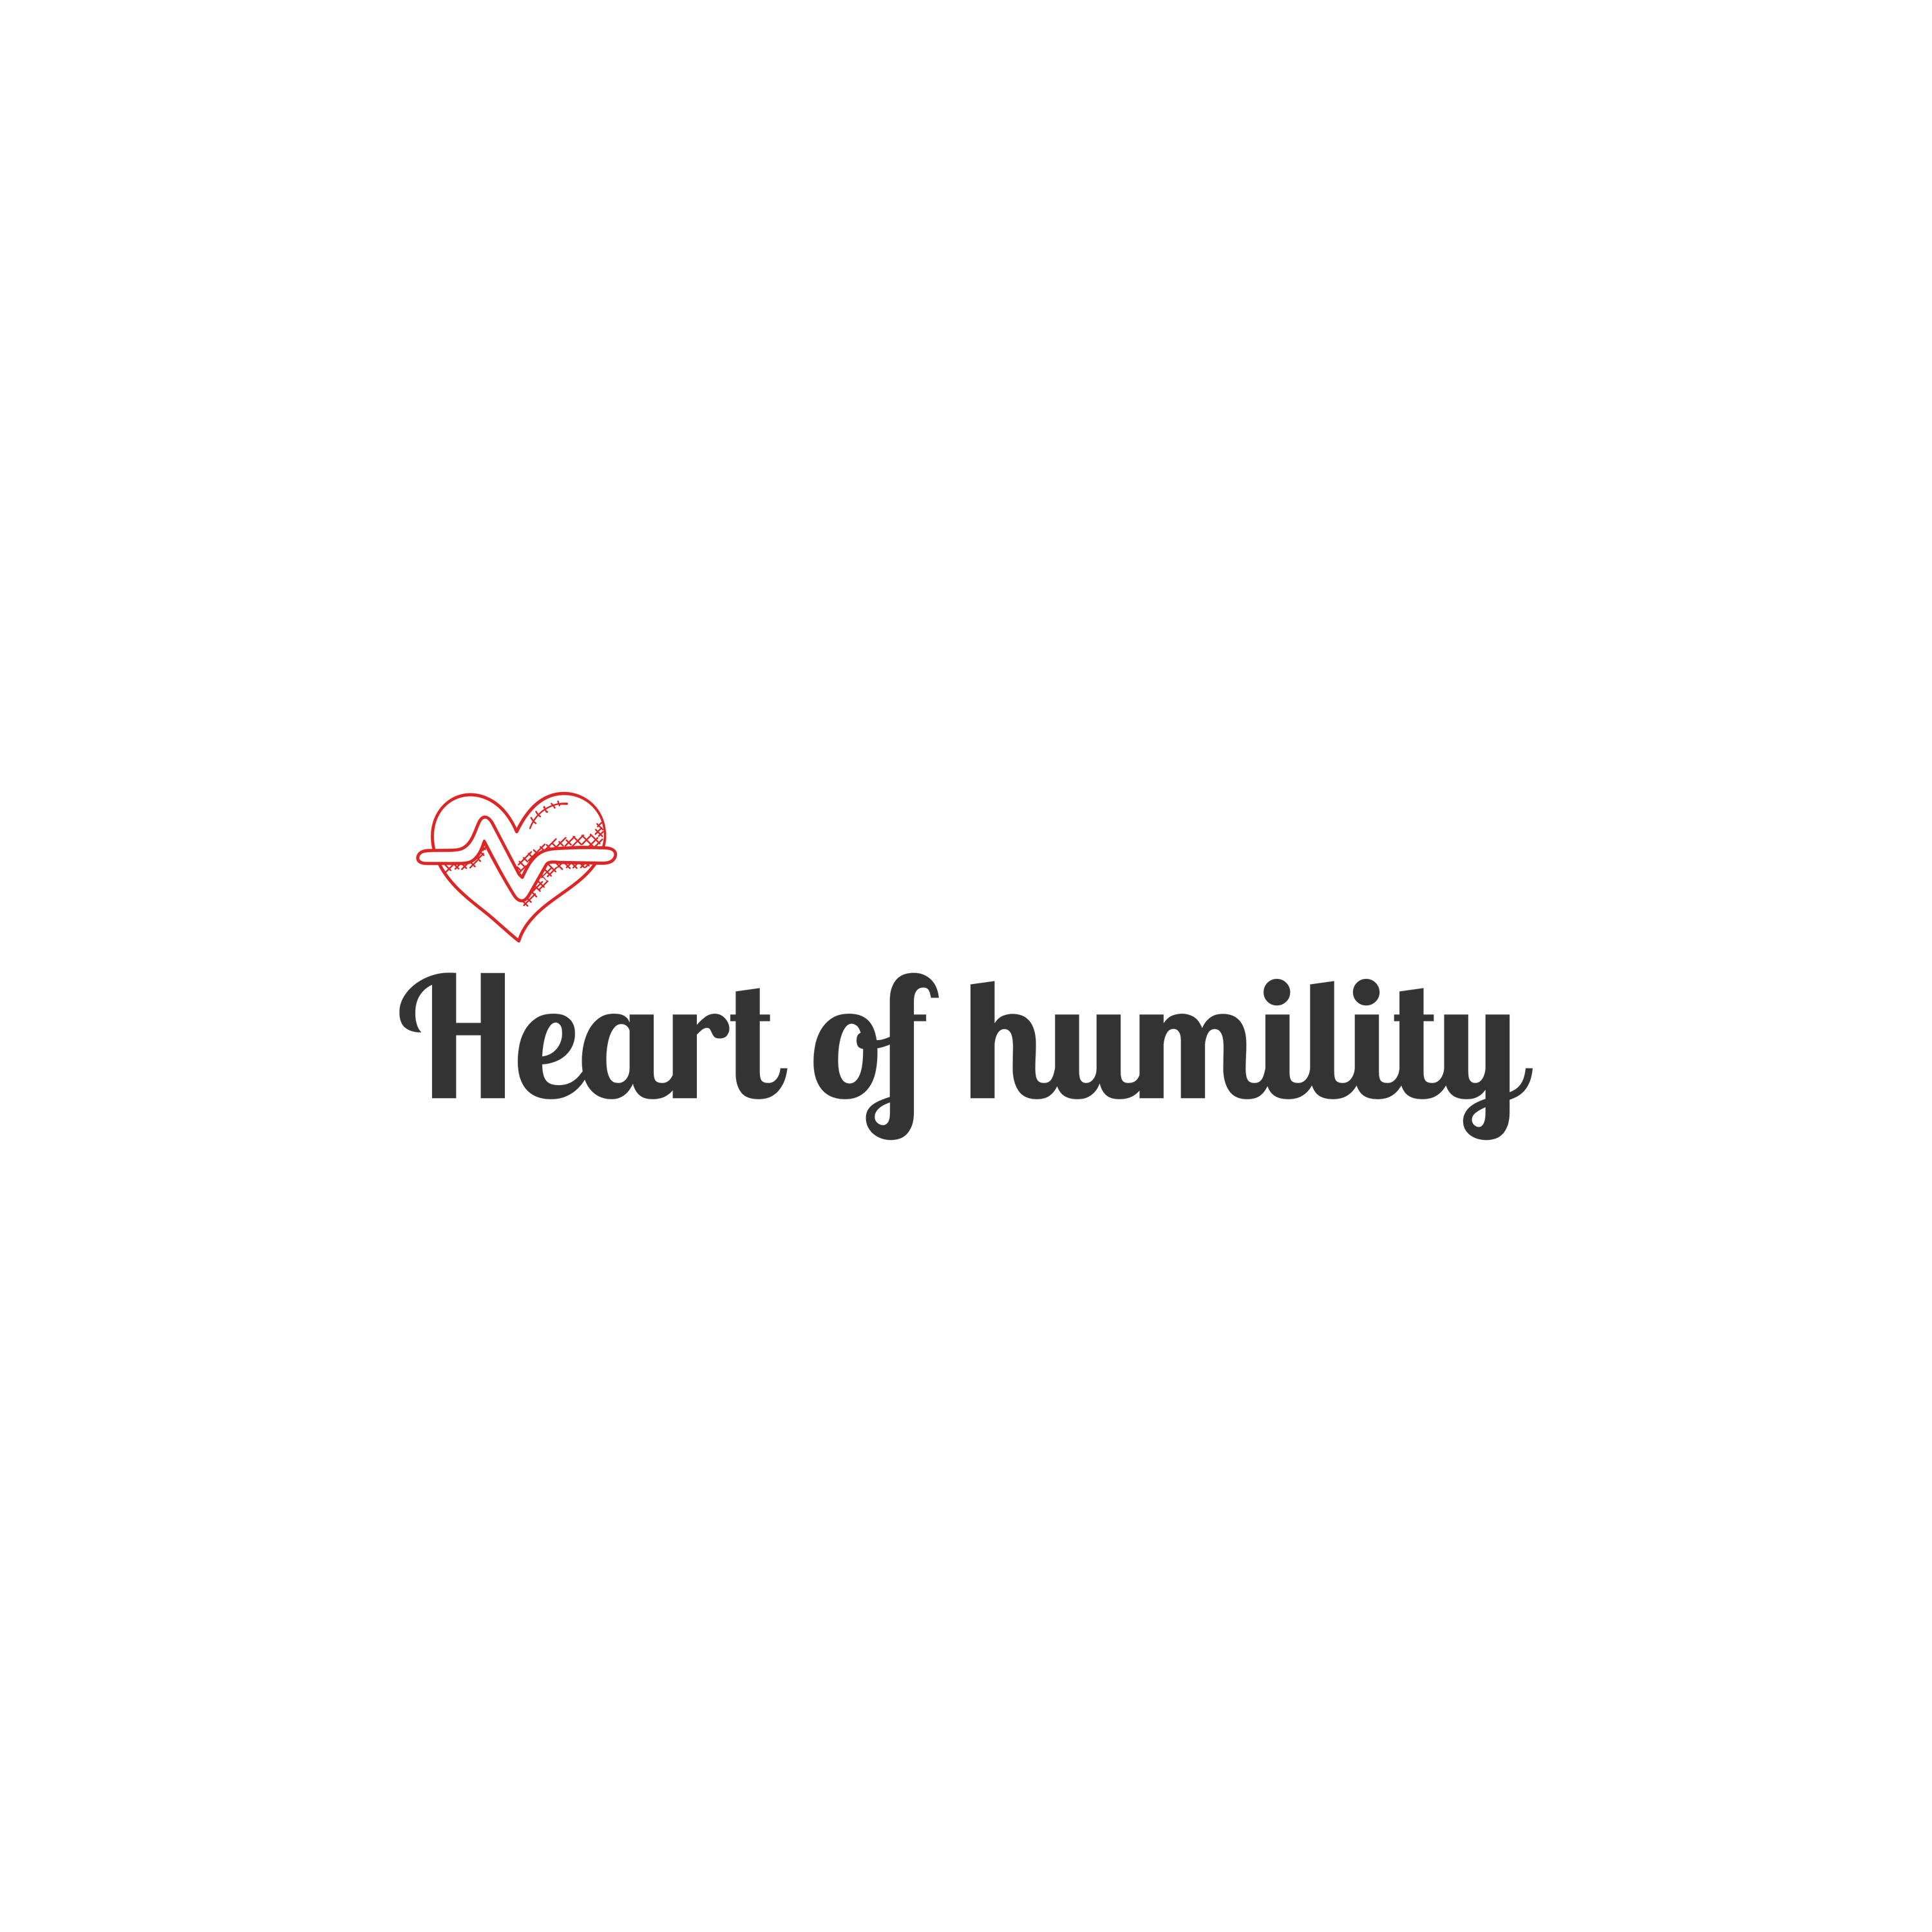 Heart of humility